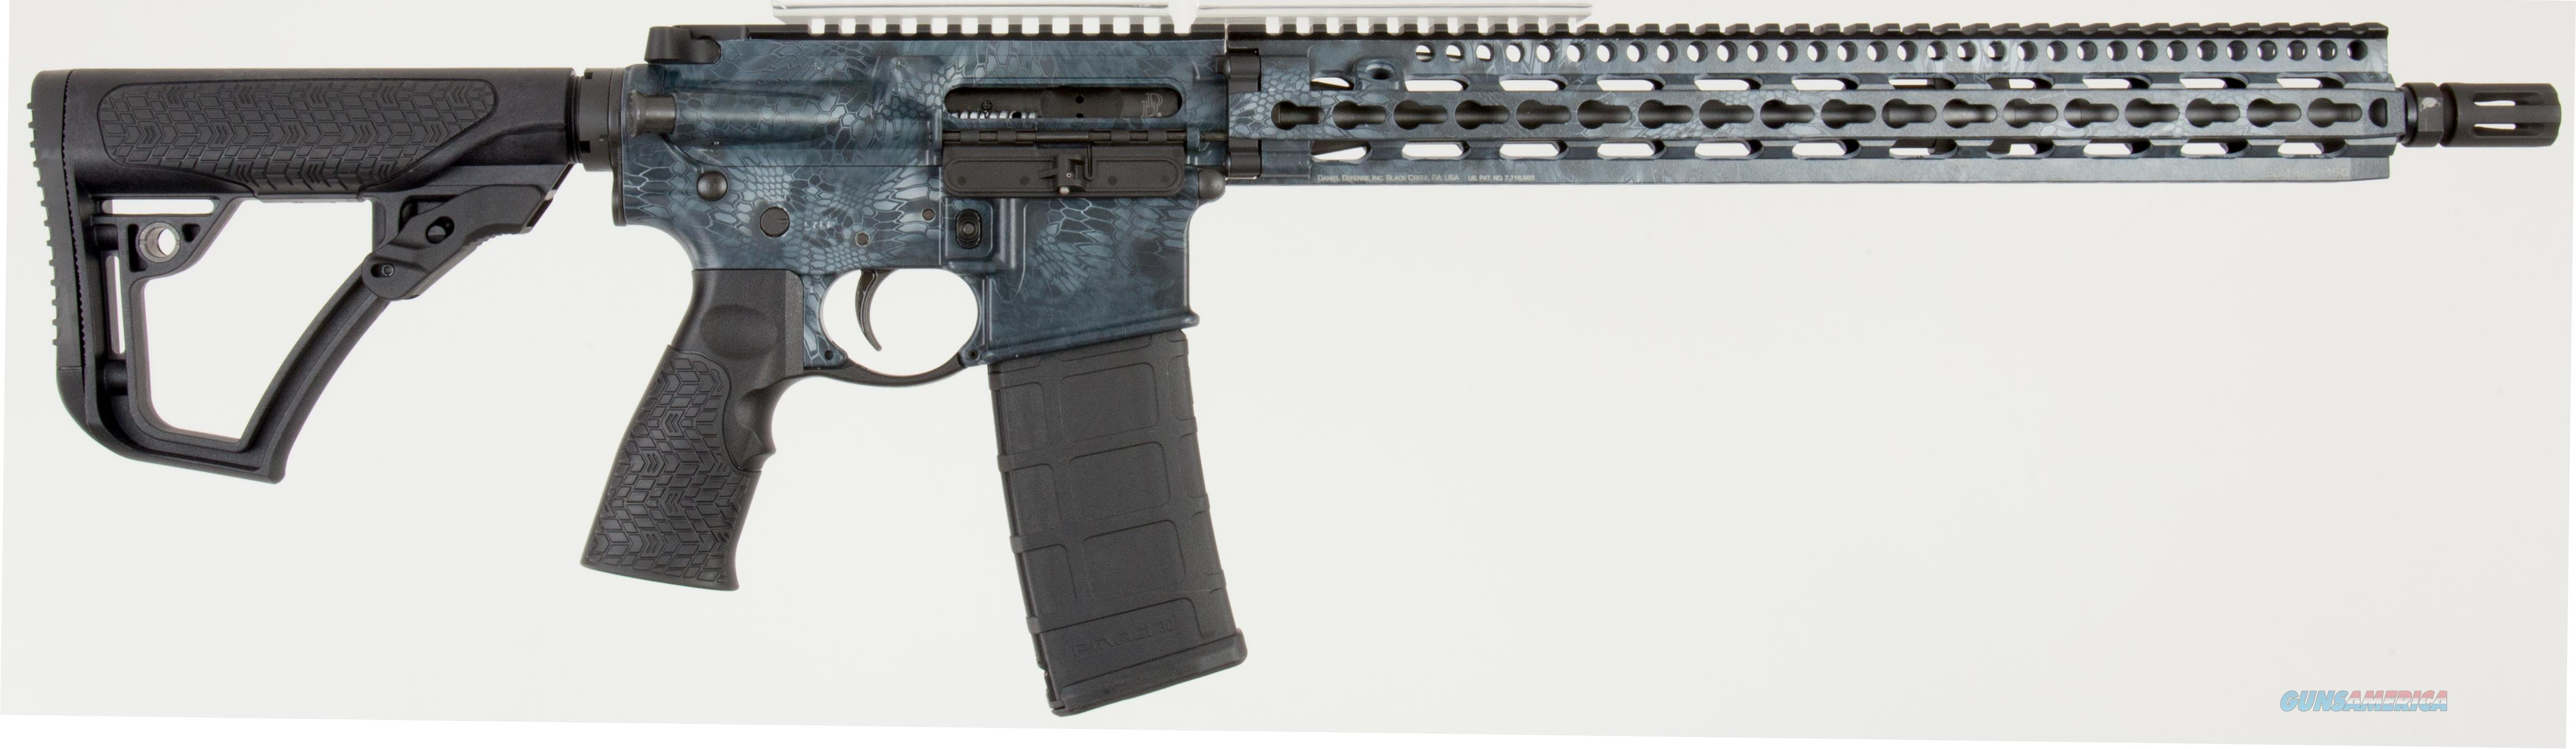 "Daniel Defense 05148047 DDM4 V11 Semi-Automatic 223 Remington/5.56 NATO 16"" 30+1 6-Position Black  Guns > Rifles > Daniel Defense > Complete Rifles"